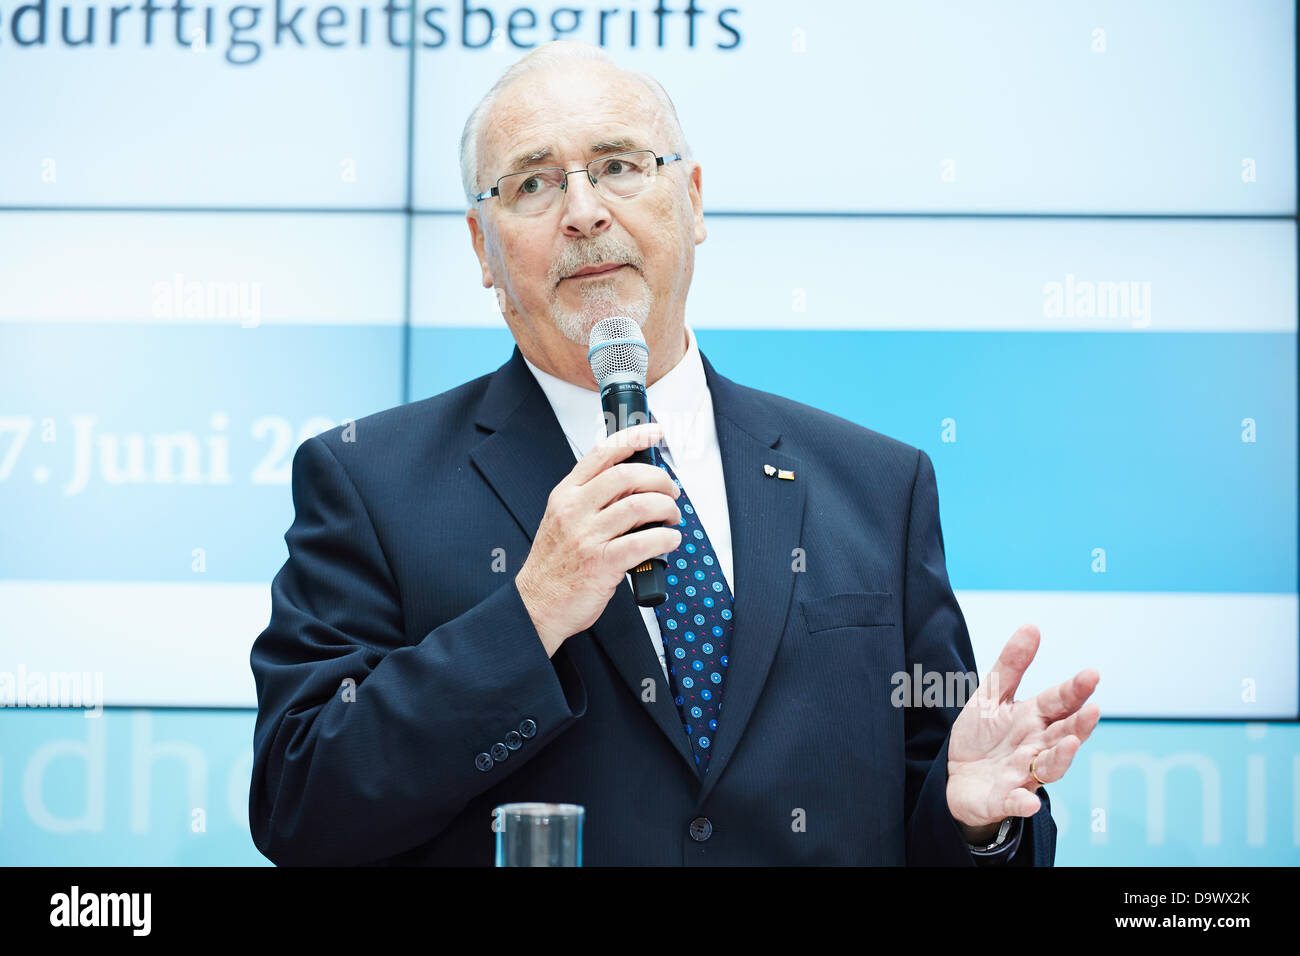 Berlin, germany. 27th June, 2013. Daniel Bahr (FDP), German Federal Minister of Health, gives a press conference Stock Photo